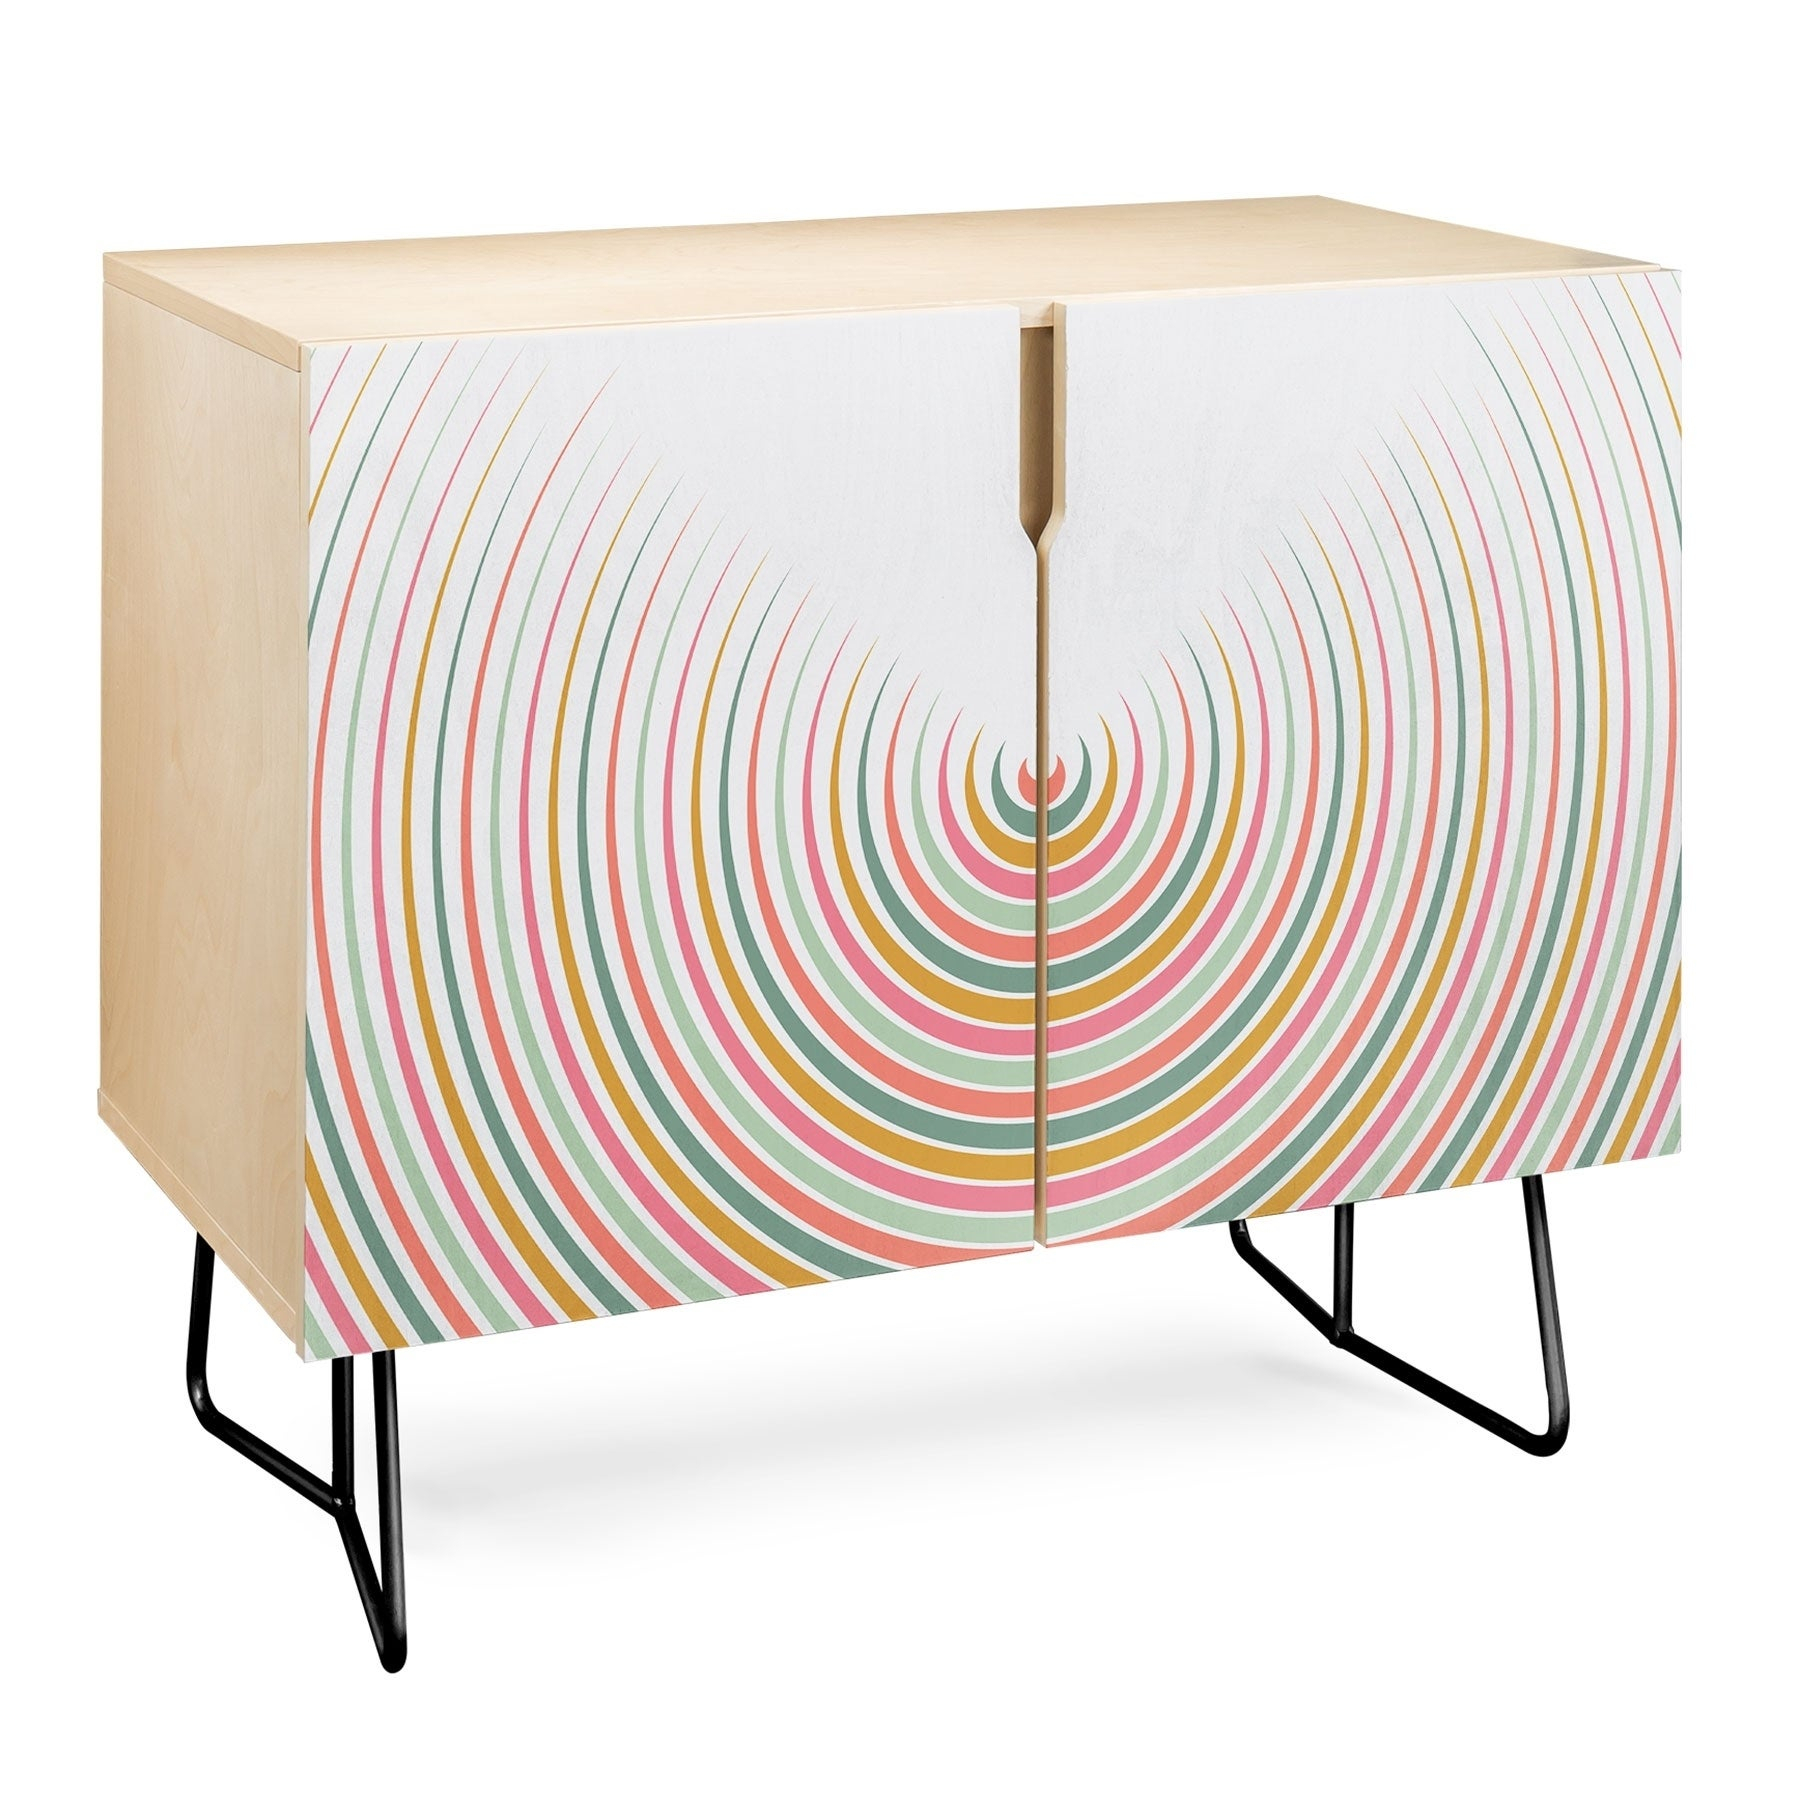 Deny Designs Festival Eclipse Credenza (Birch Or Walnut, 2 Leg Options) In Festival Eclipse Credenzas (Gallery 3 of 30)